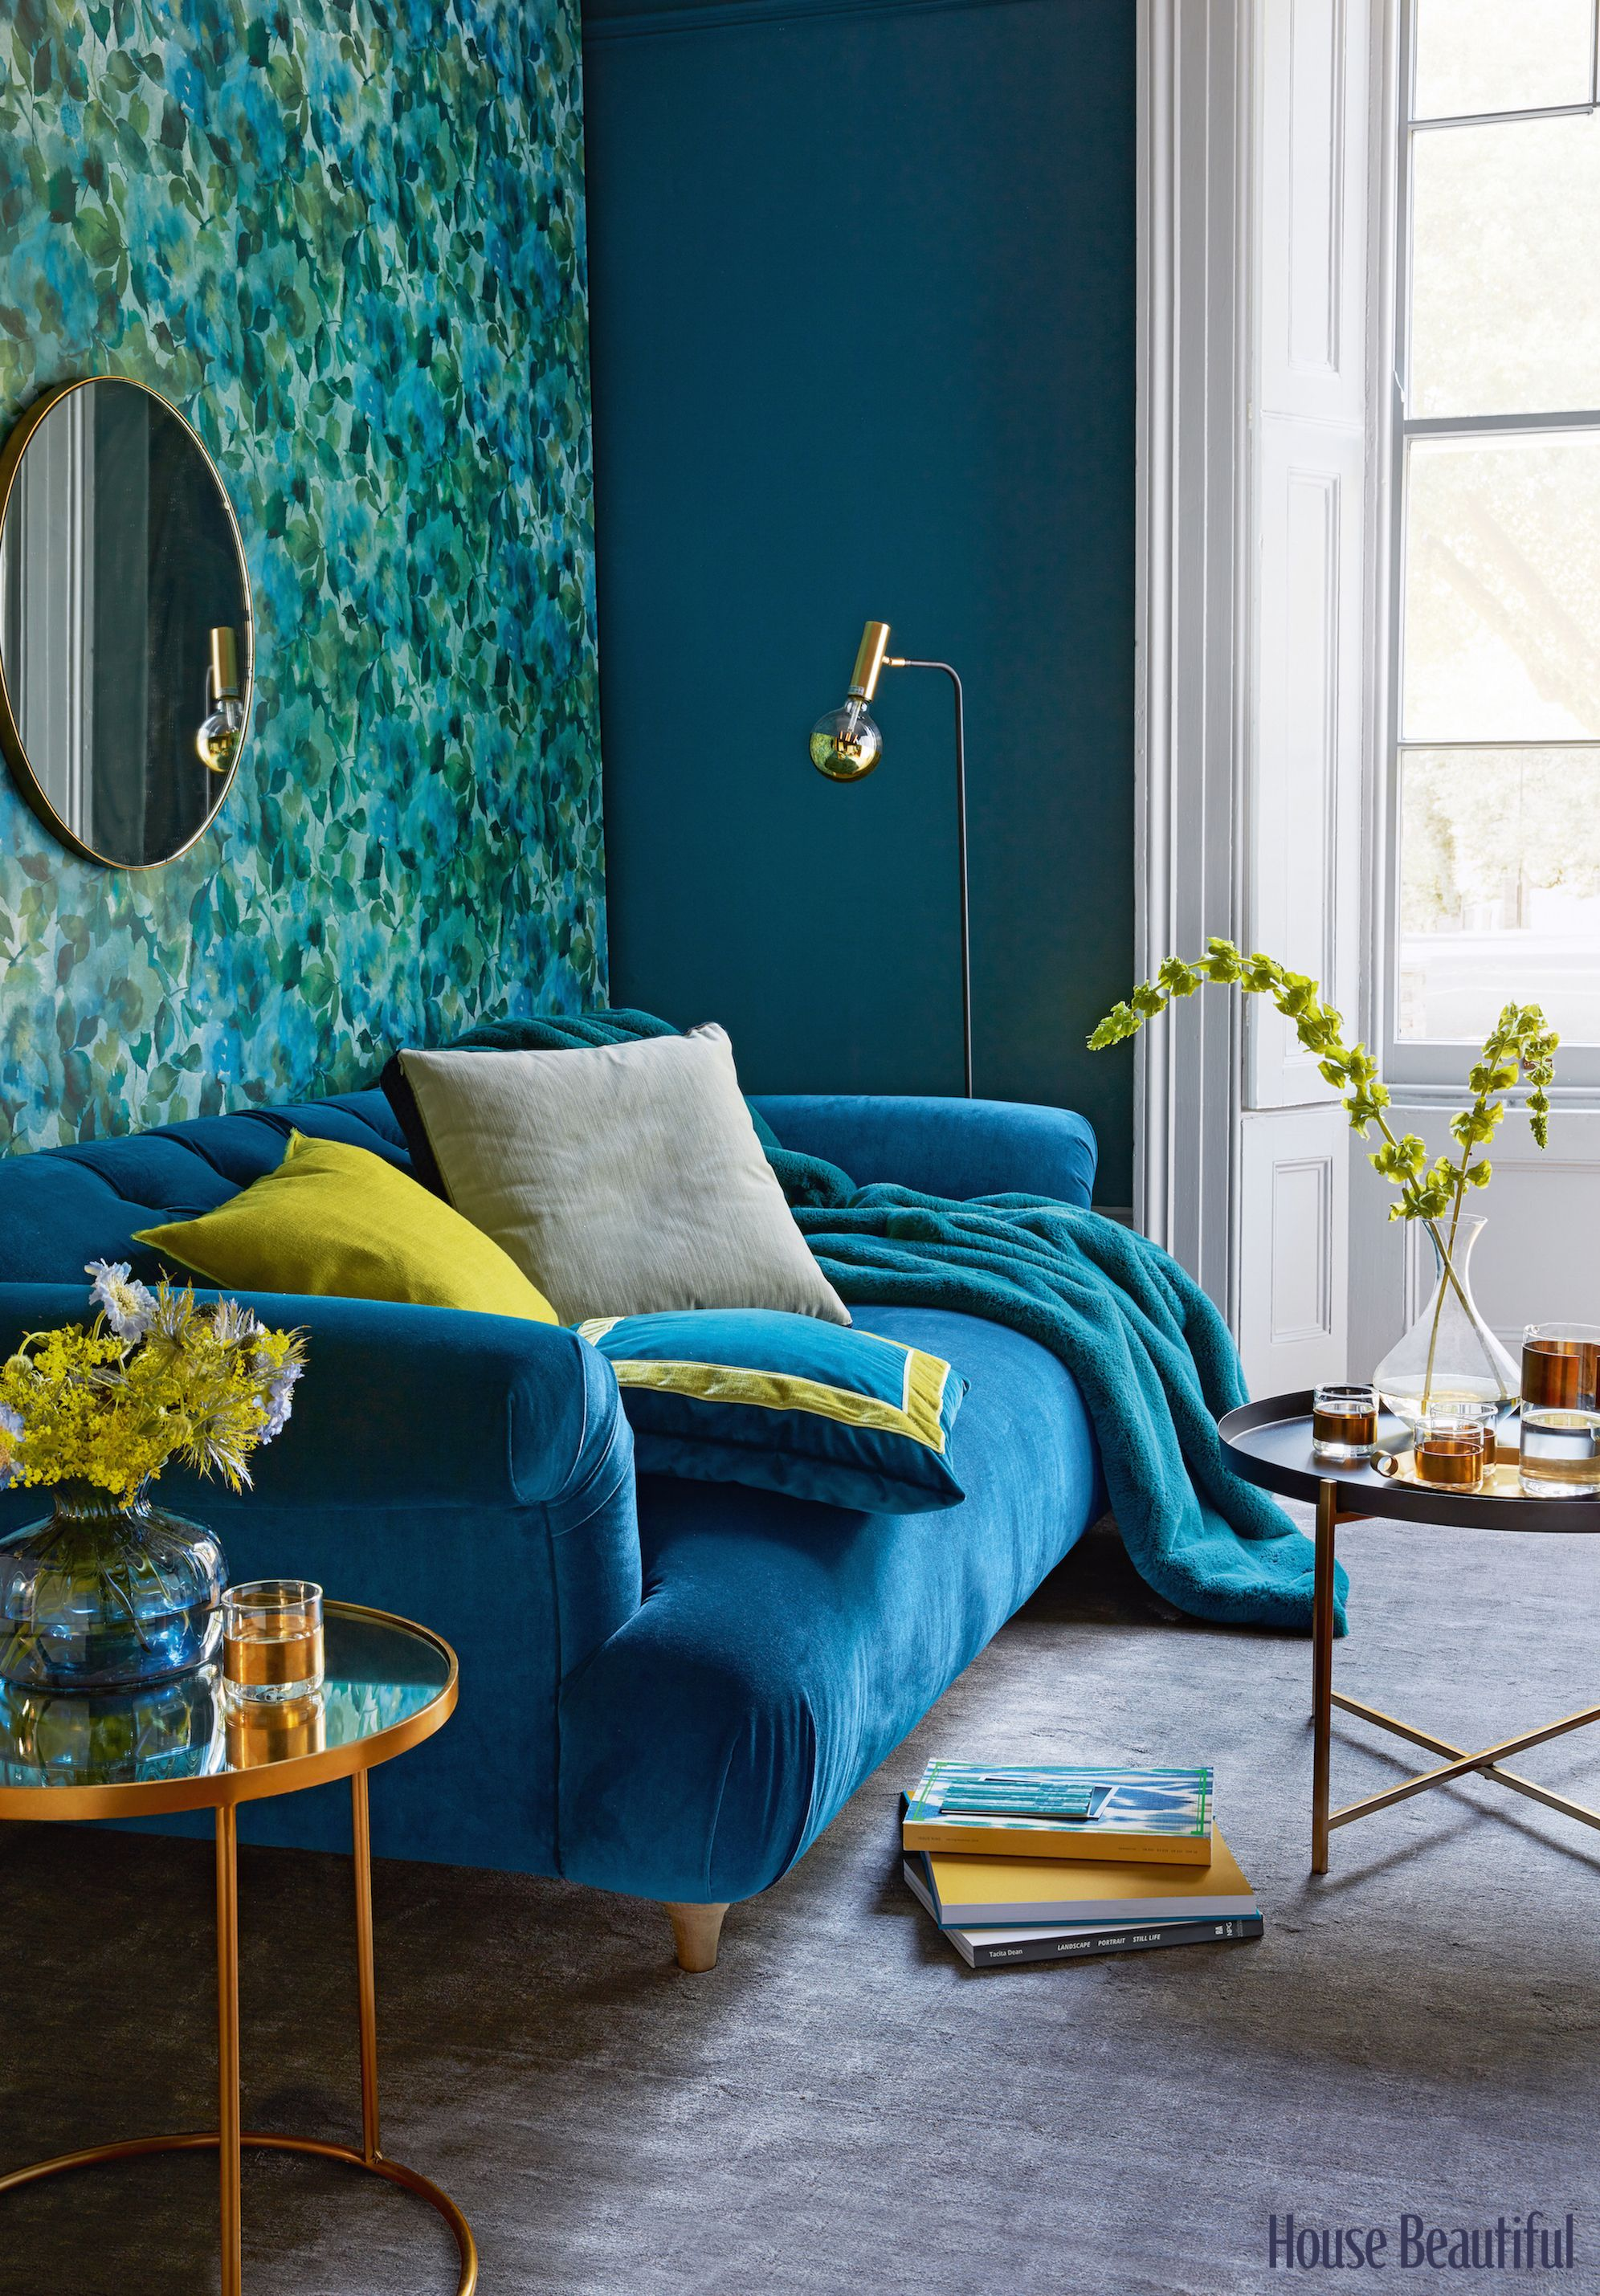 8 Photos That Will Make You Want To Decorate With Velvet Immediately Velvet Sofa Living Room Teal Living Room Decor Teal Living Rooms #velvet #living #room #ideas